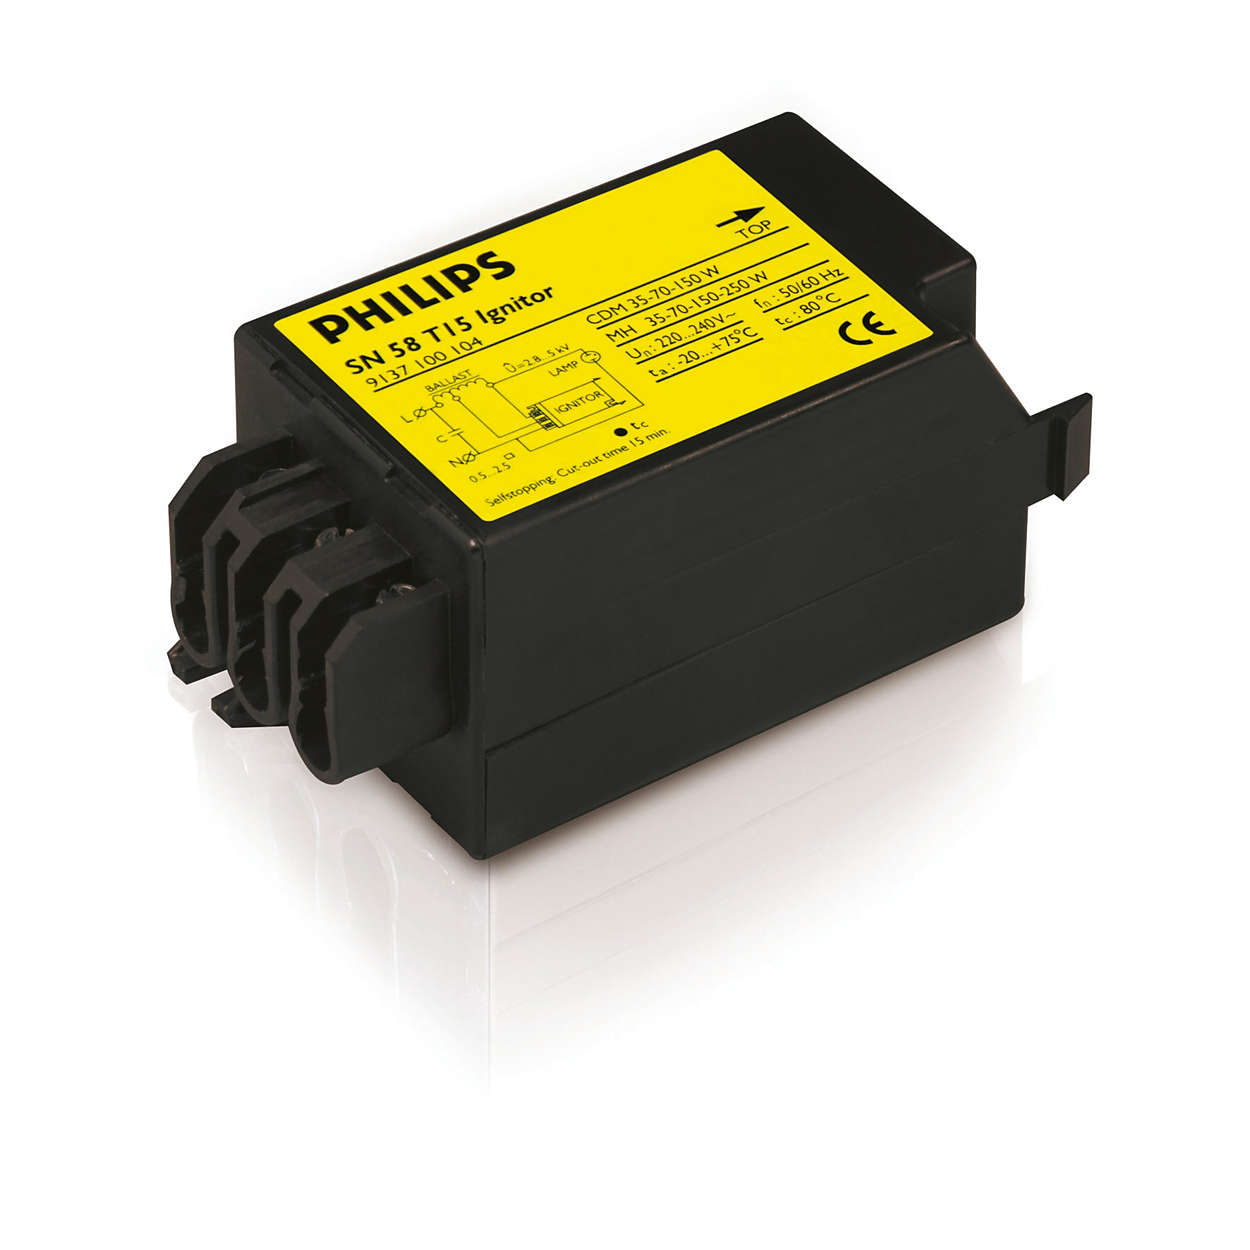 Electronic semi-parallel ignitor for HID lamp circuits